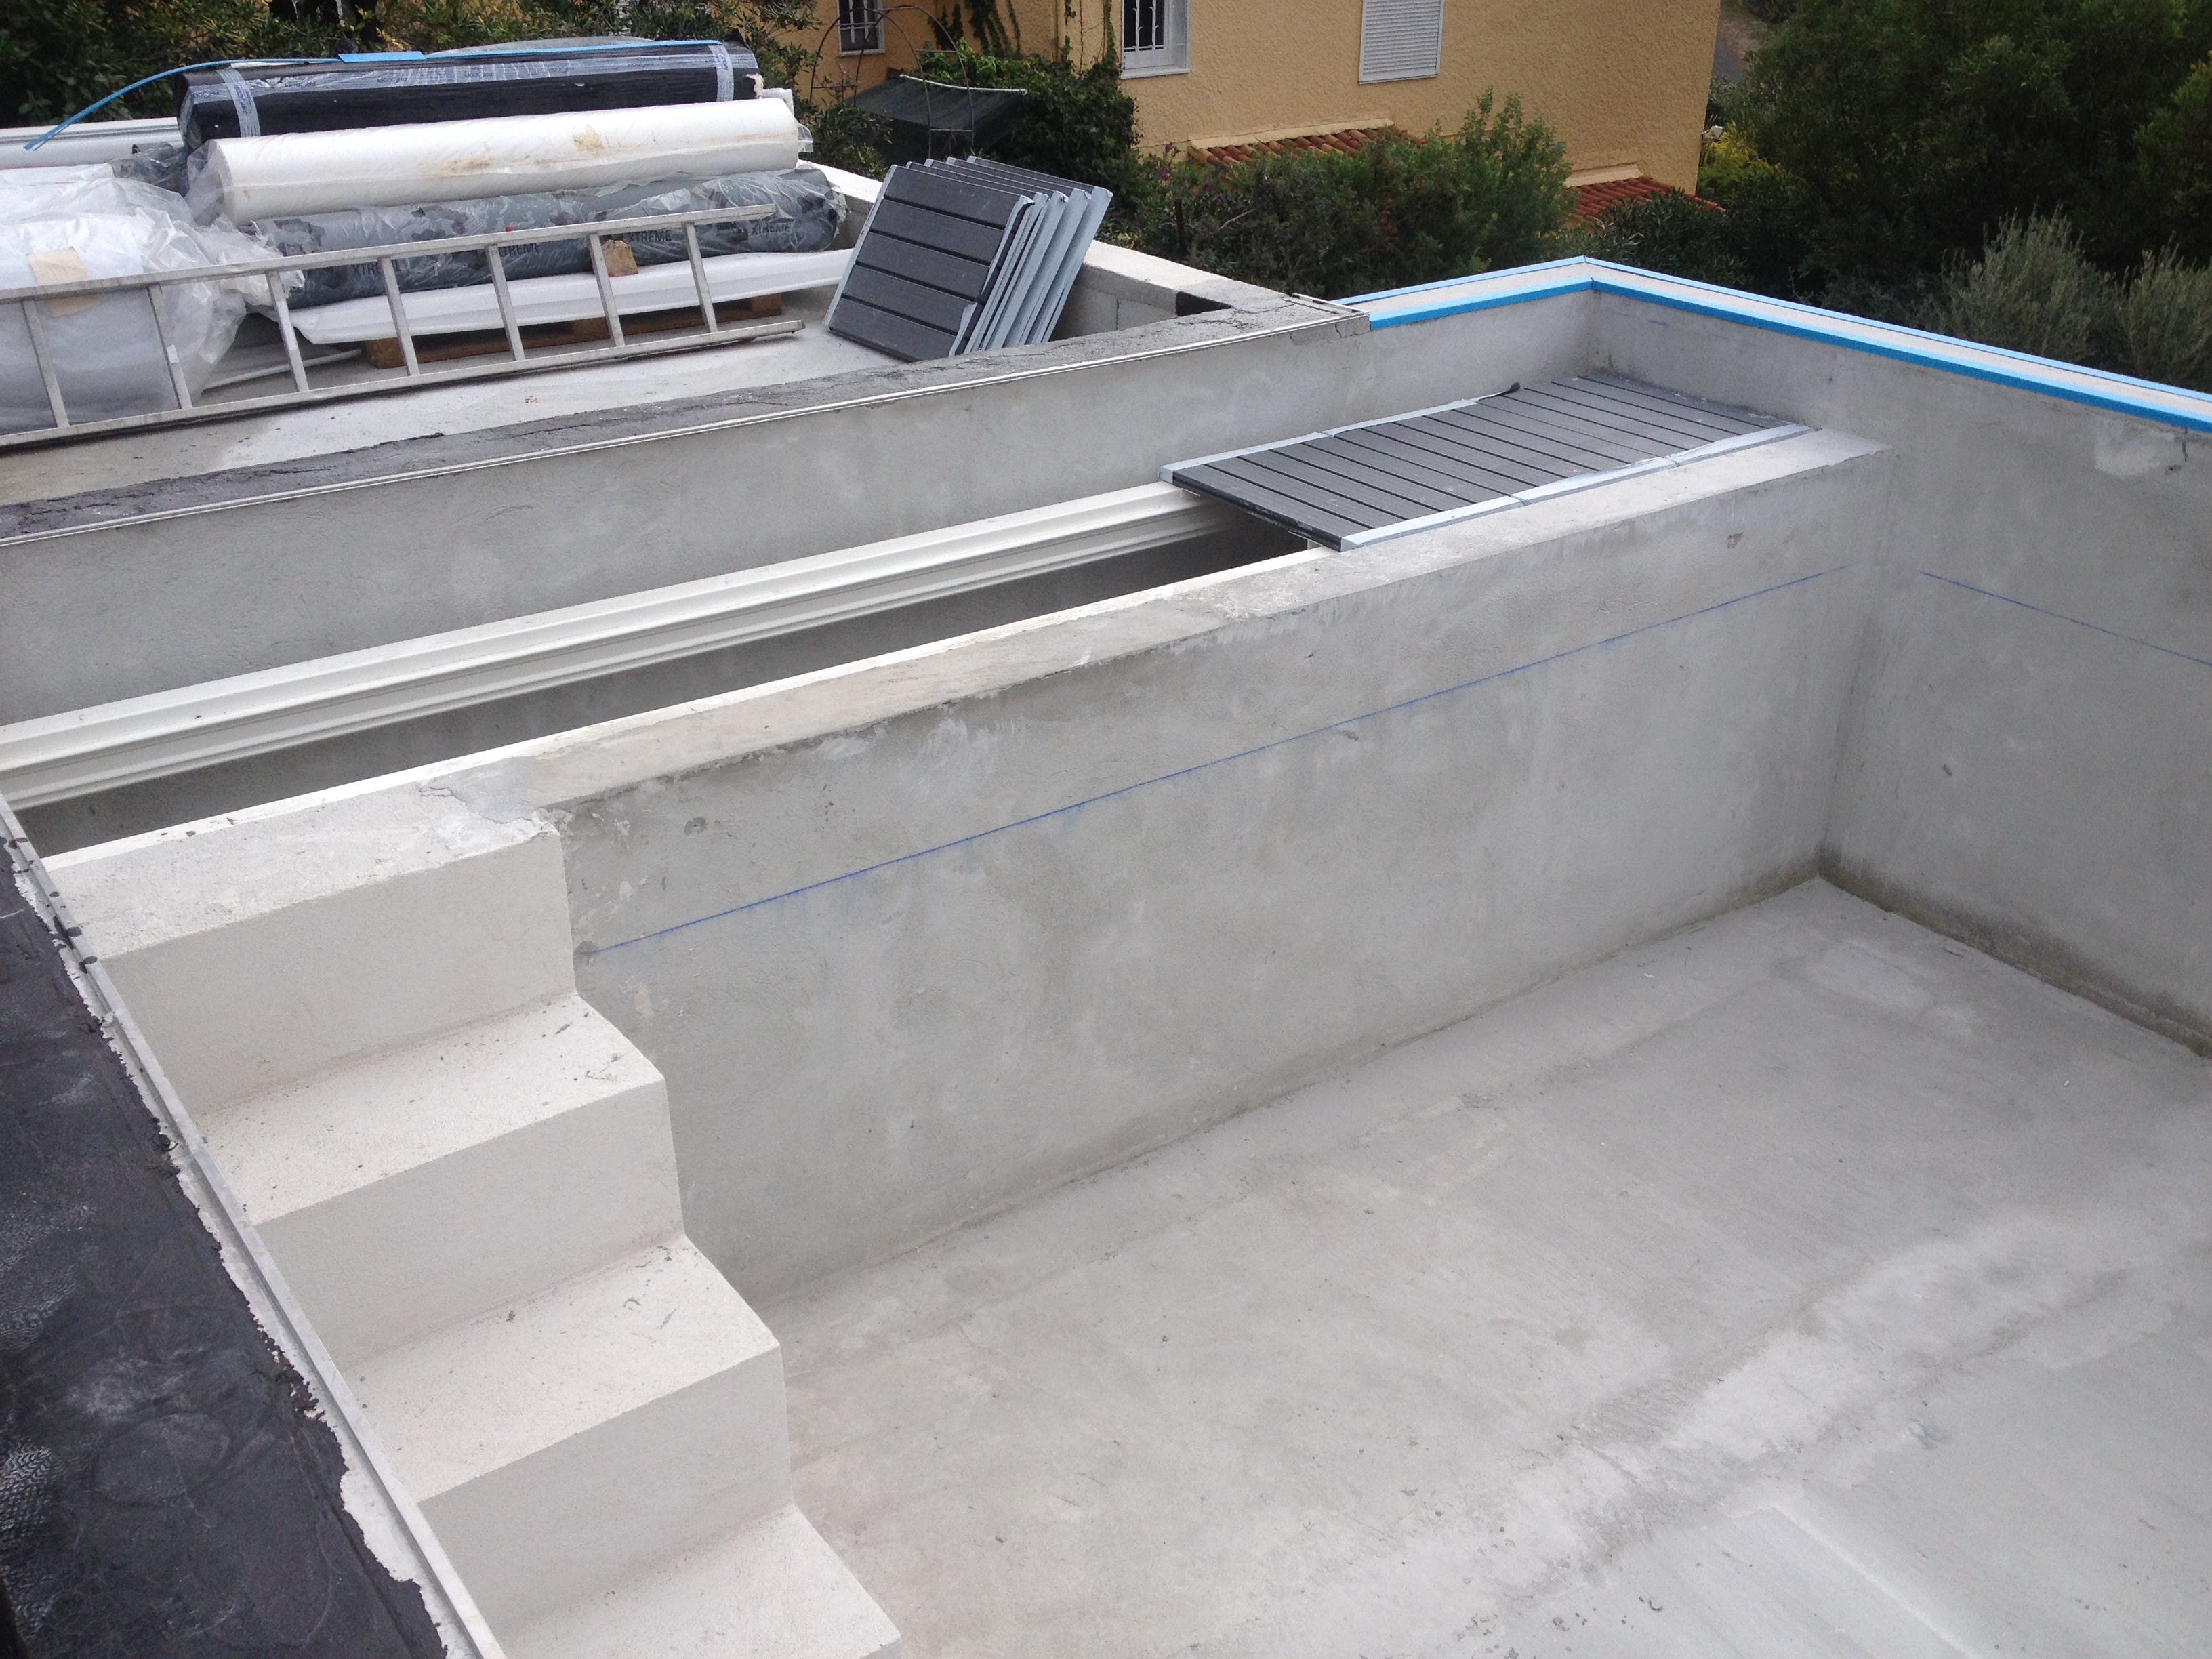 Construire une piscine en beton construction d 39 une for Construction piscine beton technique